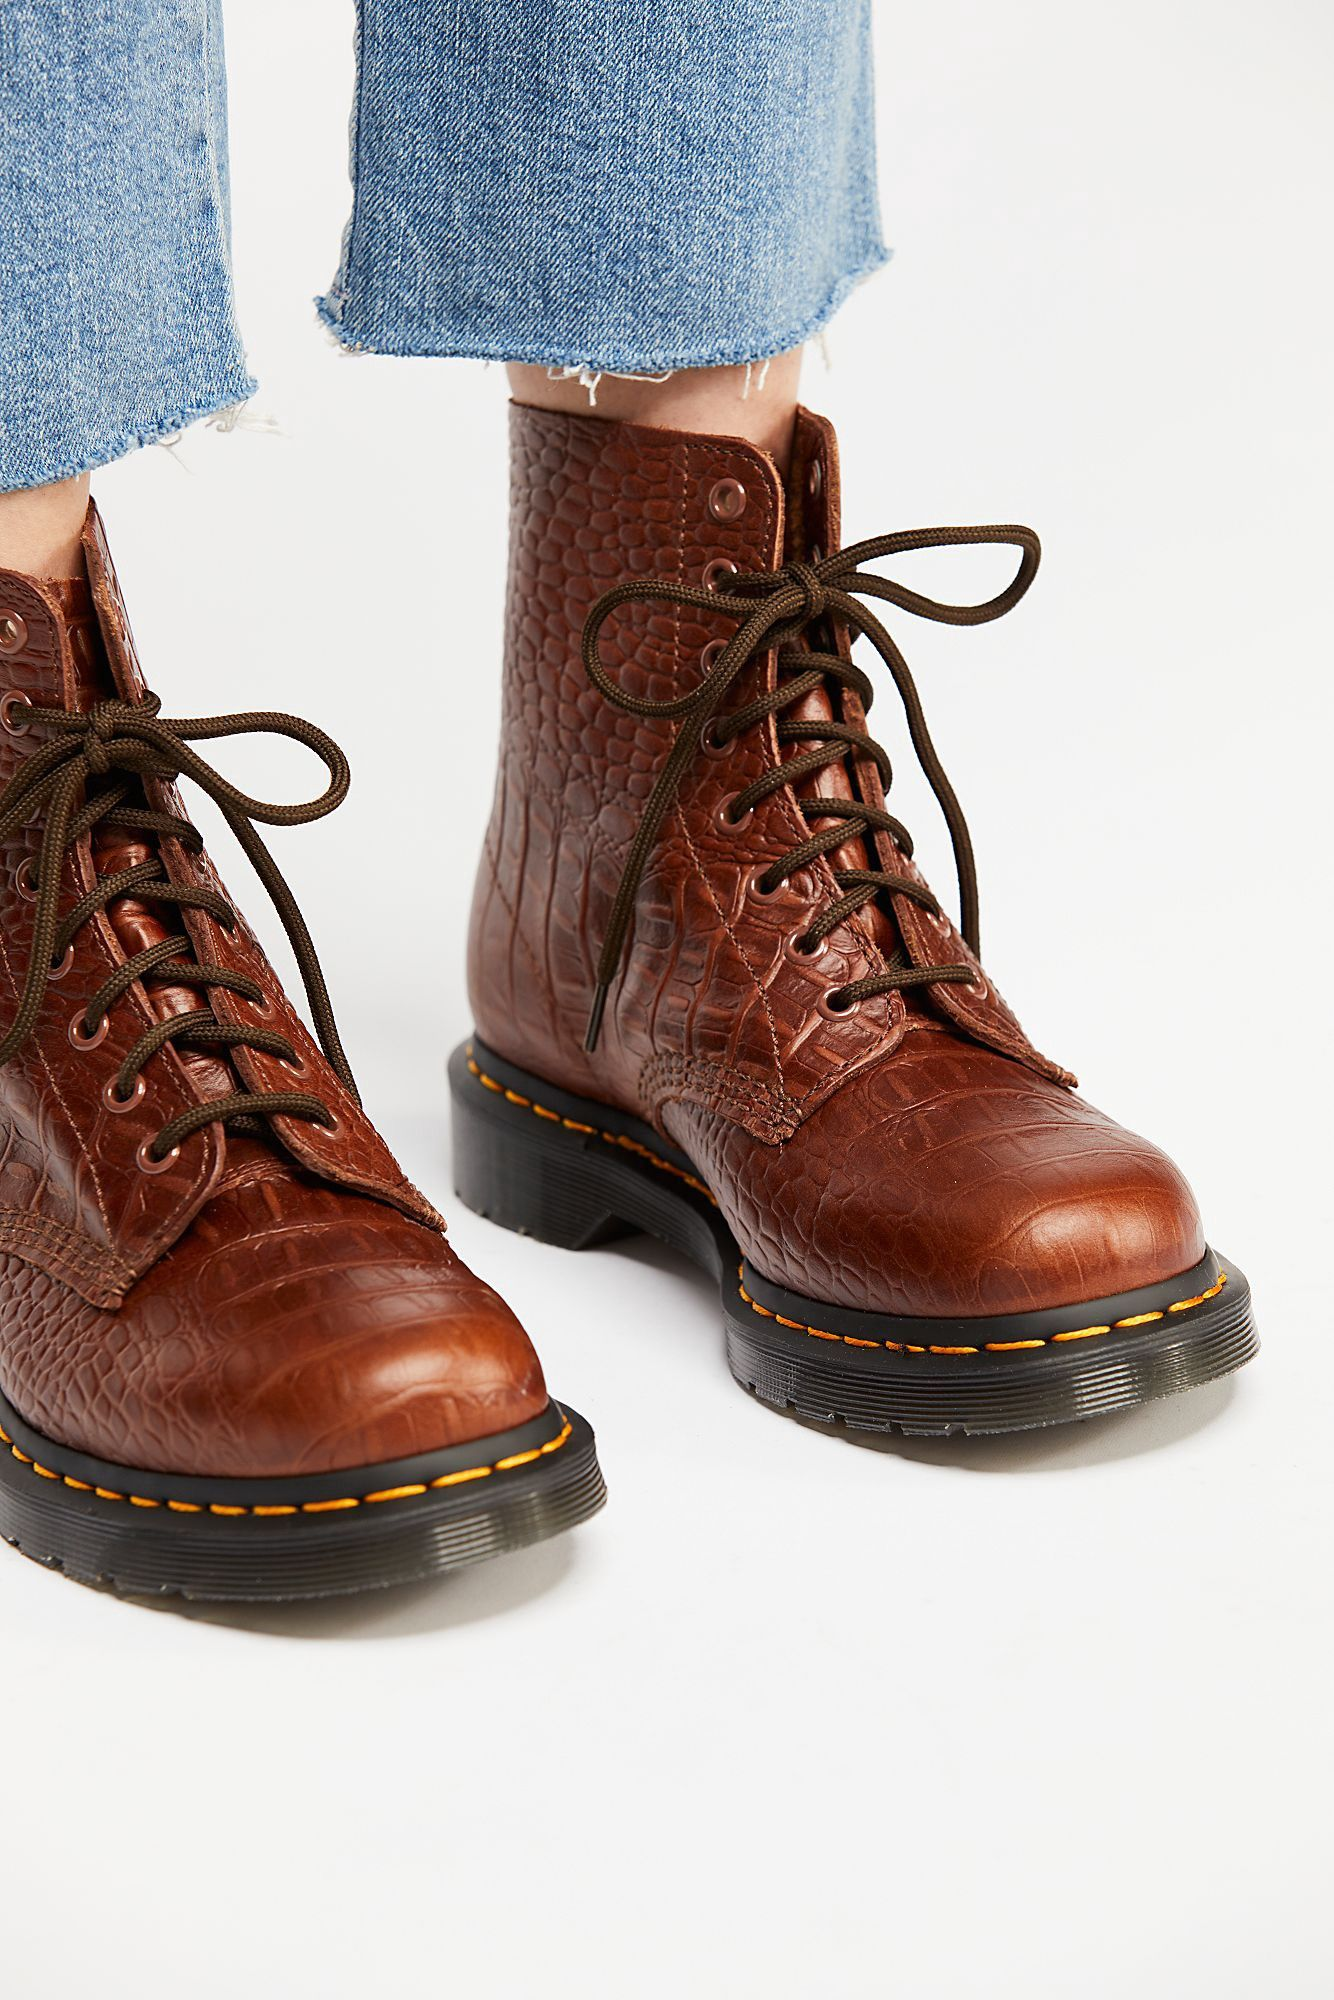 cb2aacbdb354a1 Free People Dr. Martens Pascal Croc Boot - 10 Yellow